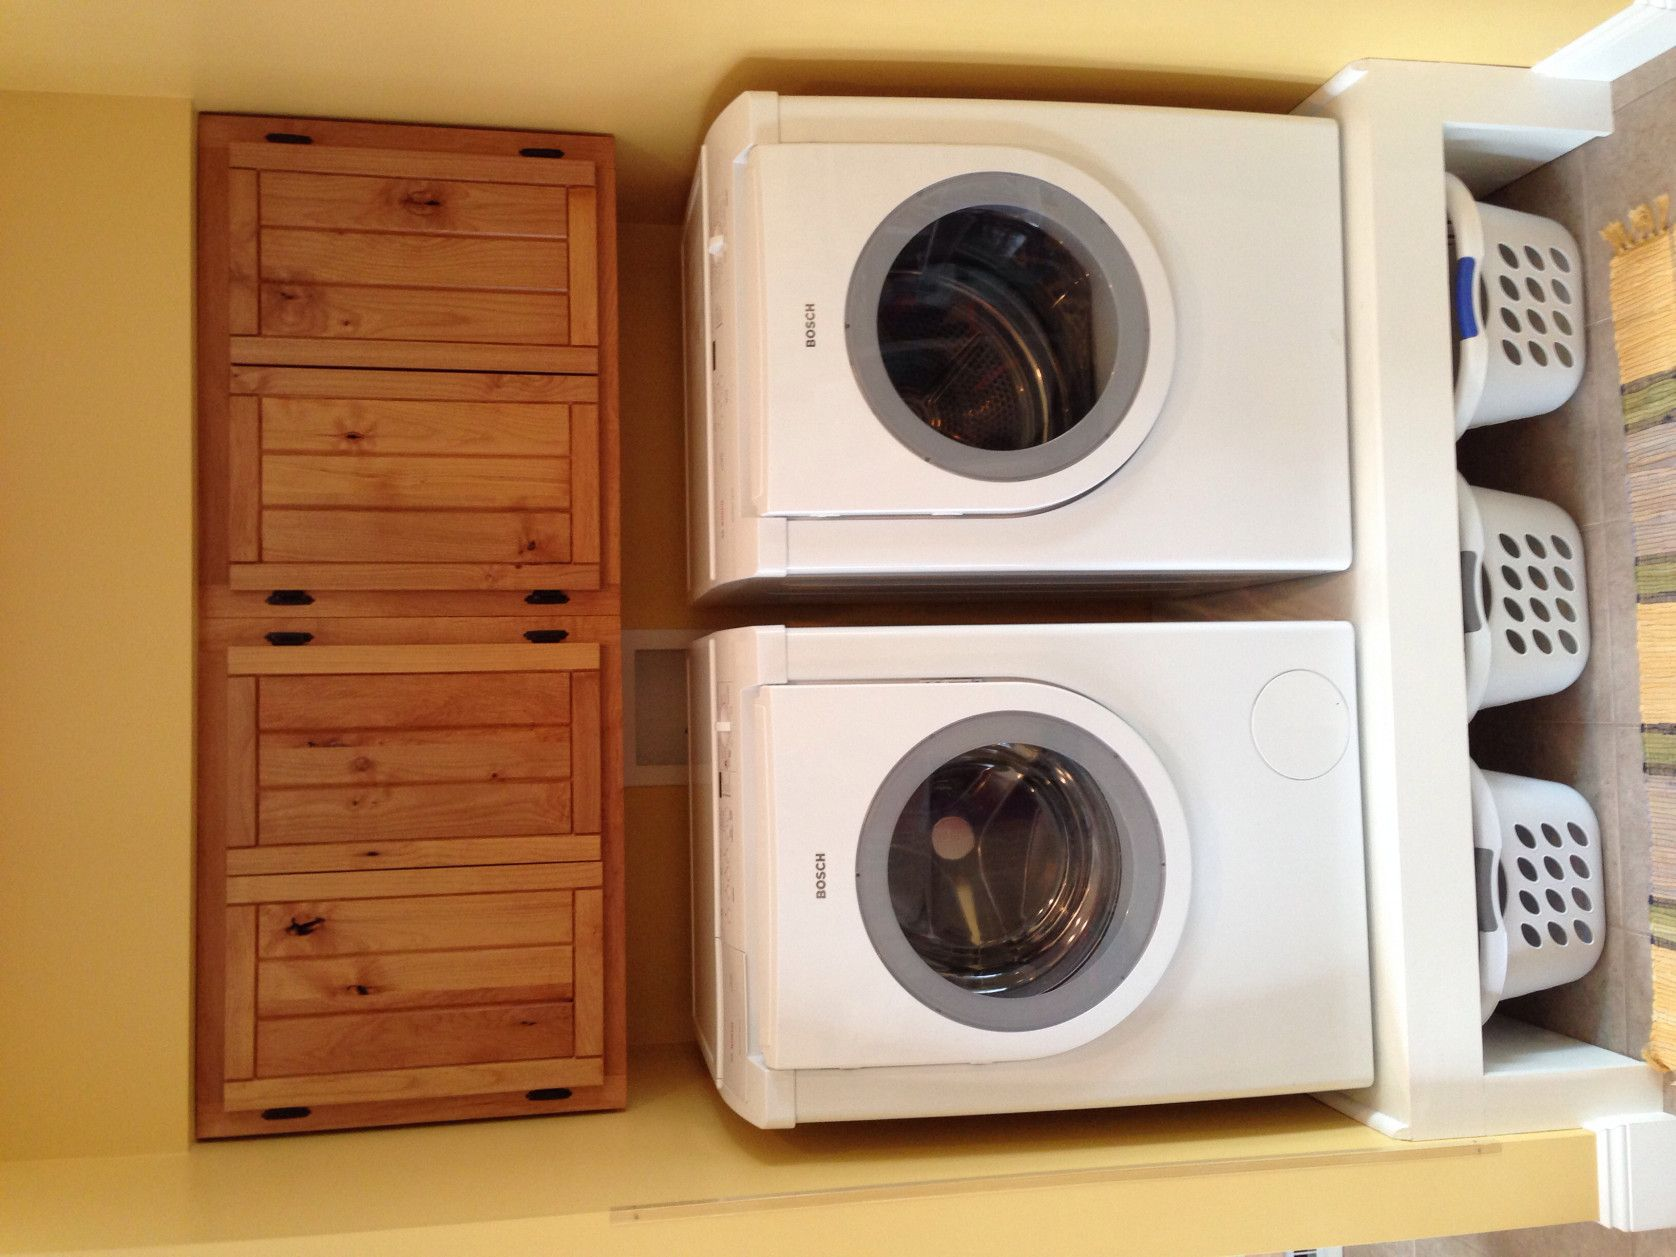 77 Washer and Dryer Cabinets Kitchen Shelf Display Ideas Check